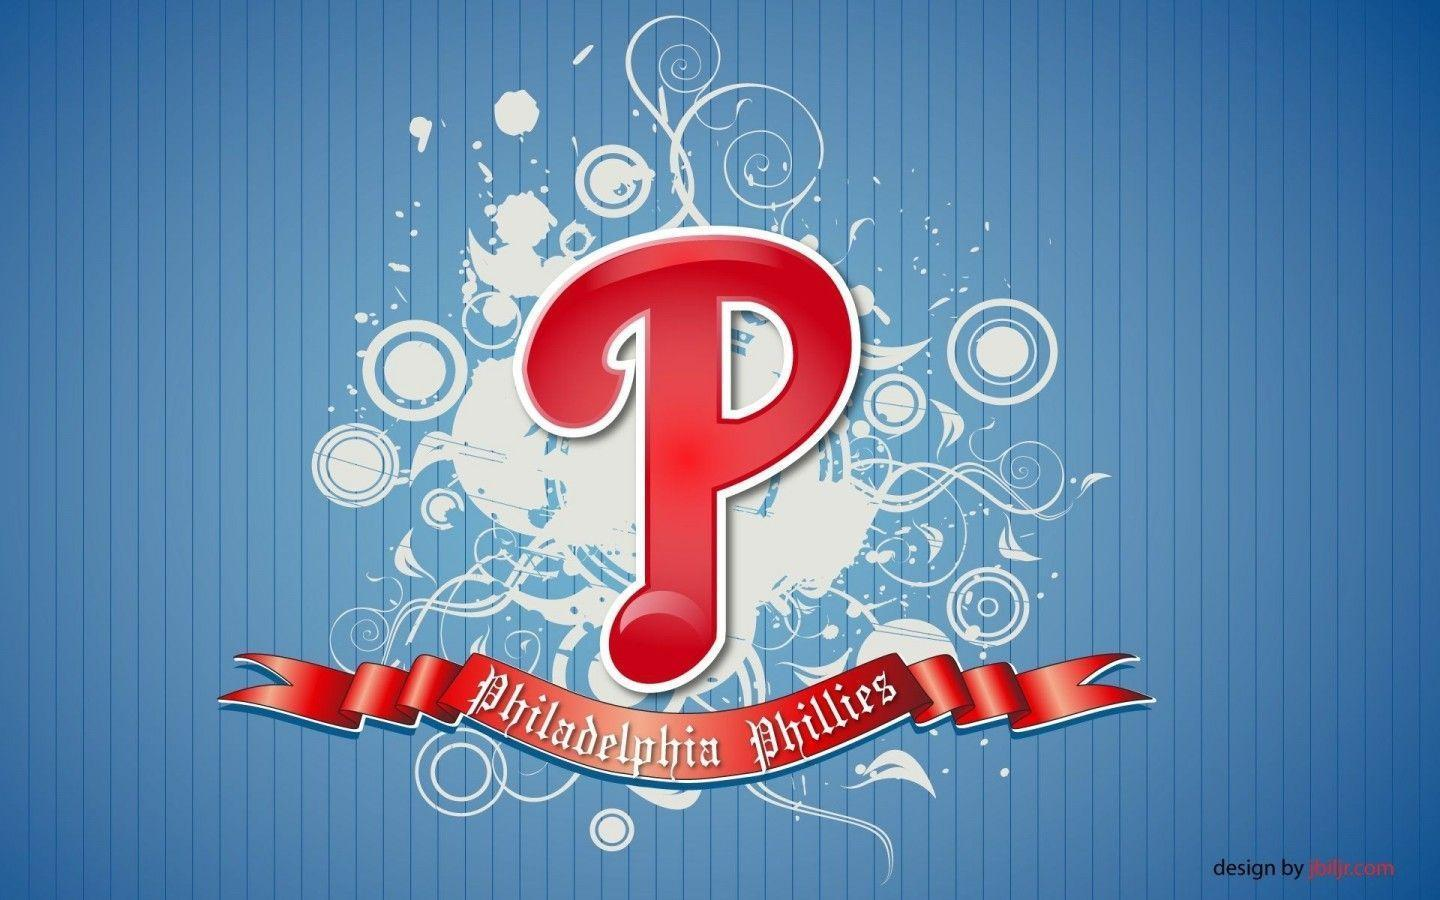 Phillies Wallpaper 2013, wallpaper, Phillies Wallpaper 2013 hd ...